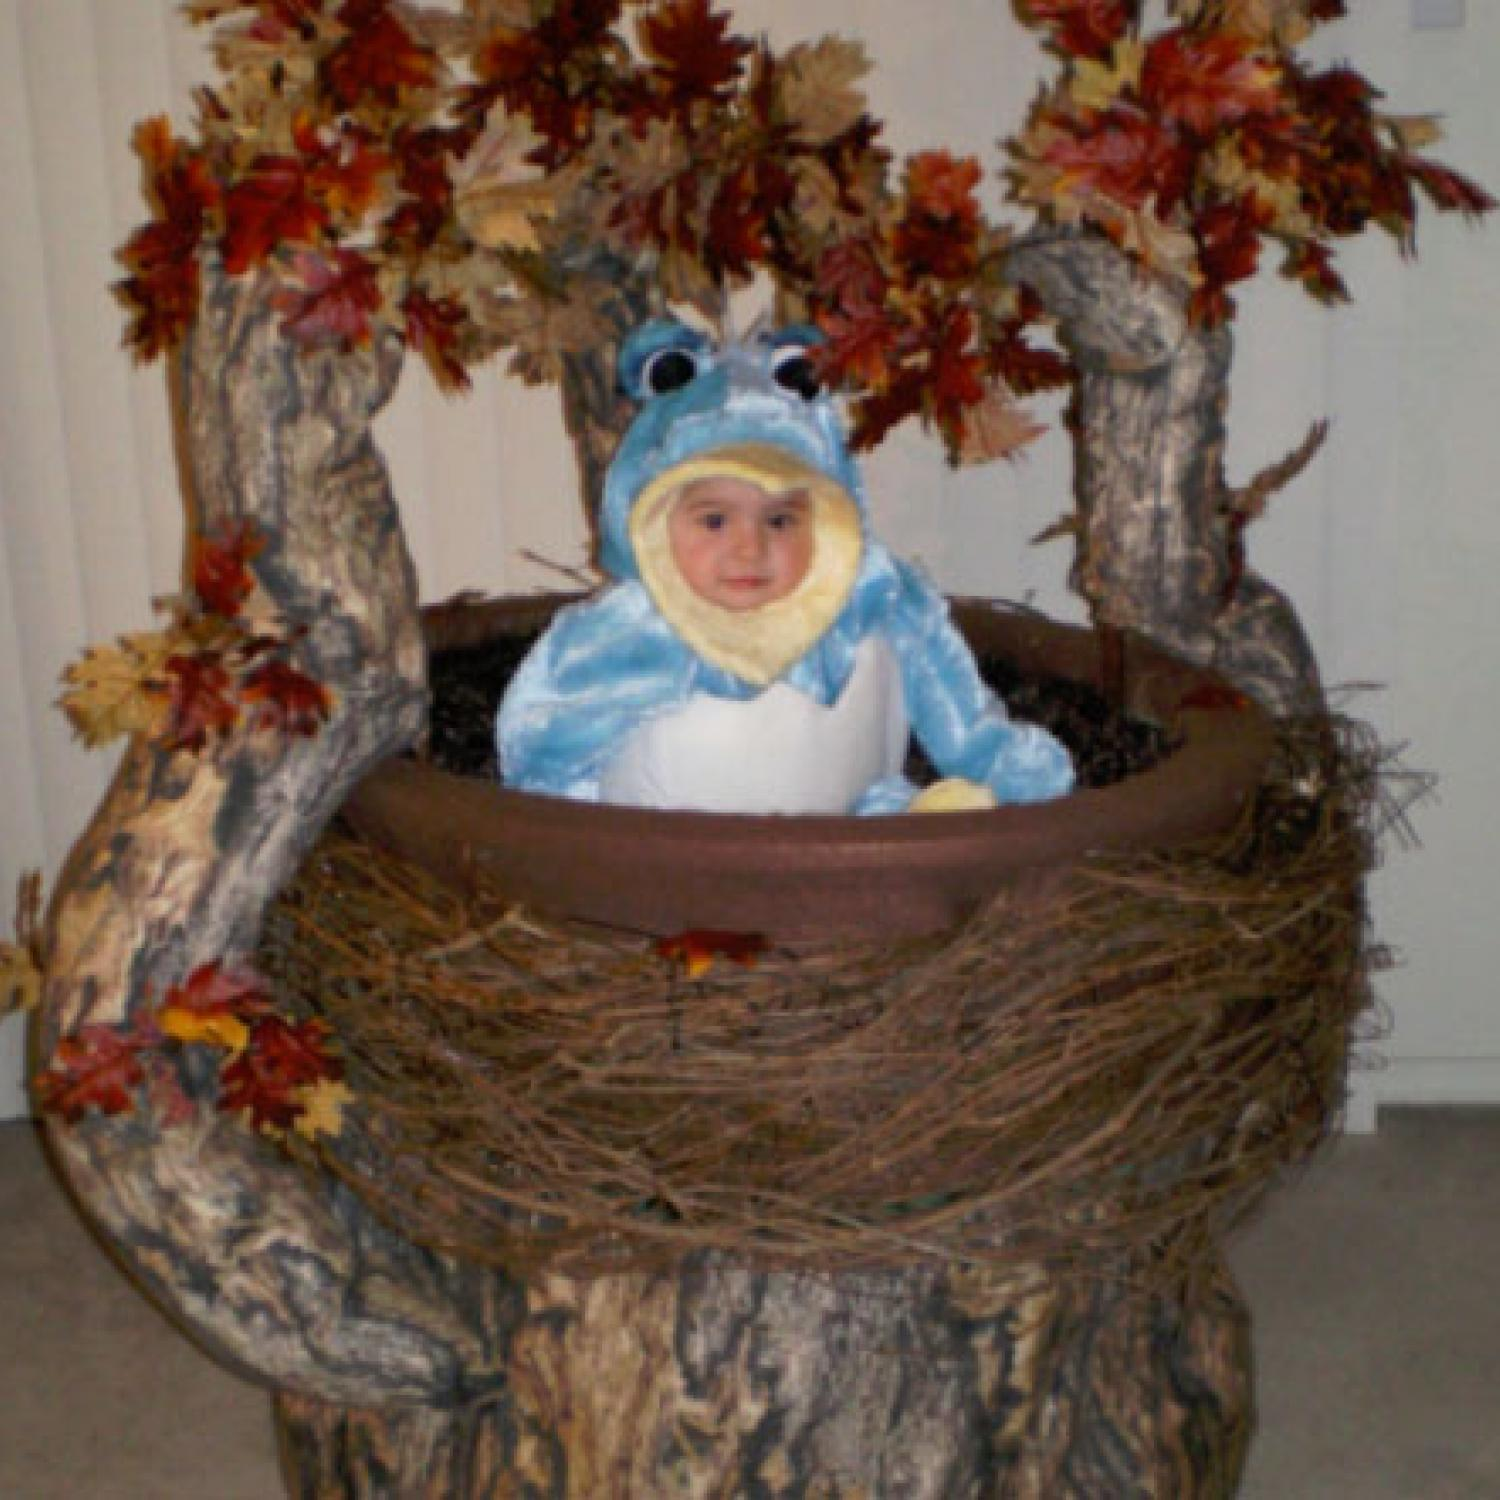 Ideas For Homemade Halloween Costumes For Dogs Homemade Halloween Costume